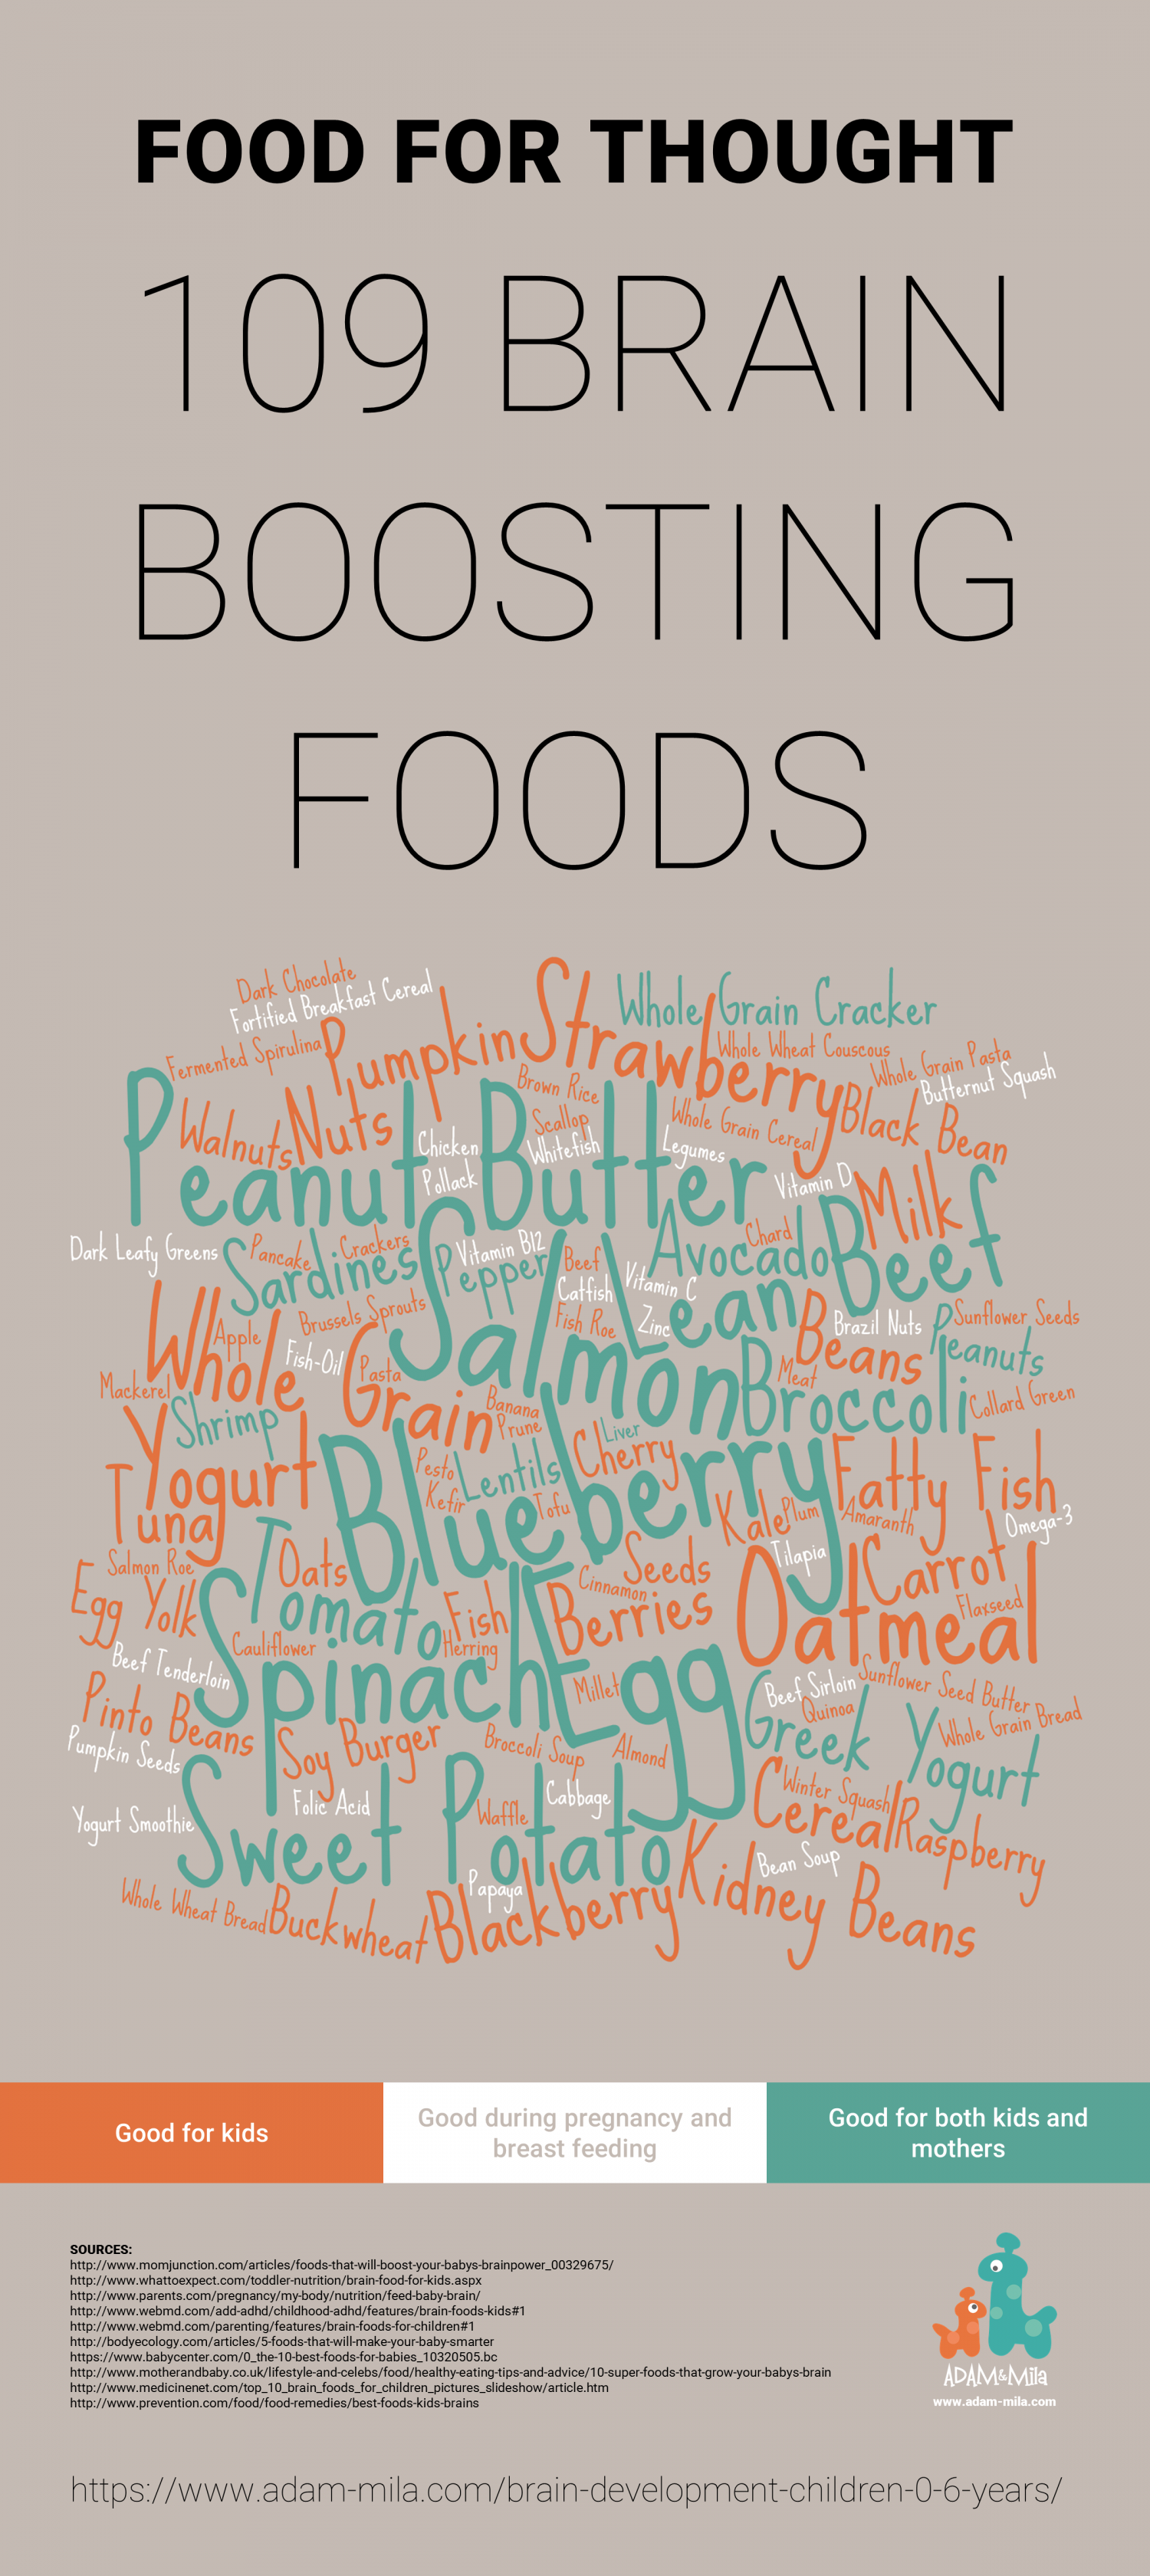 109 Brain Boosting Foods Infographic